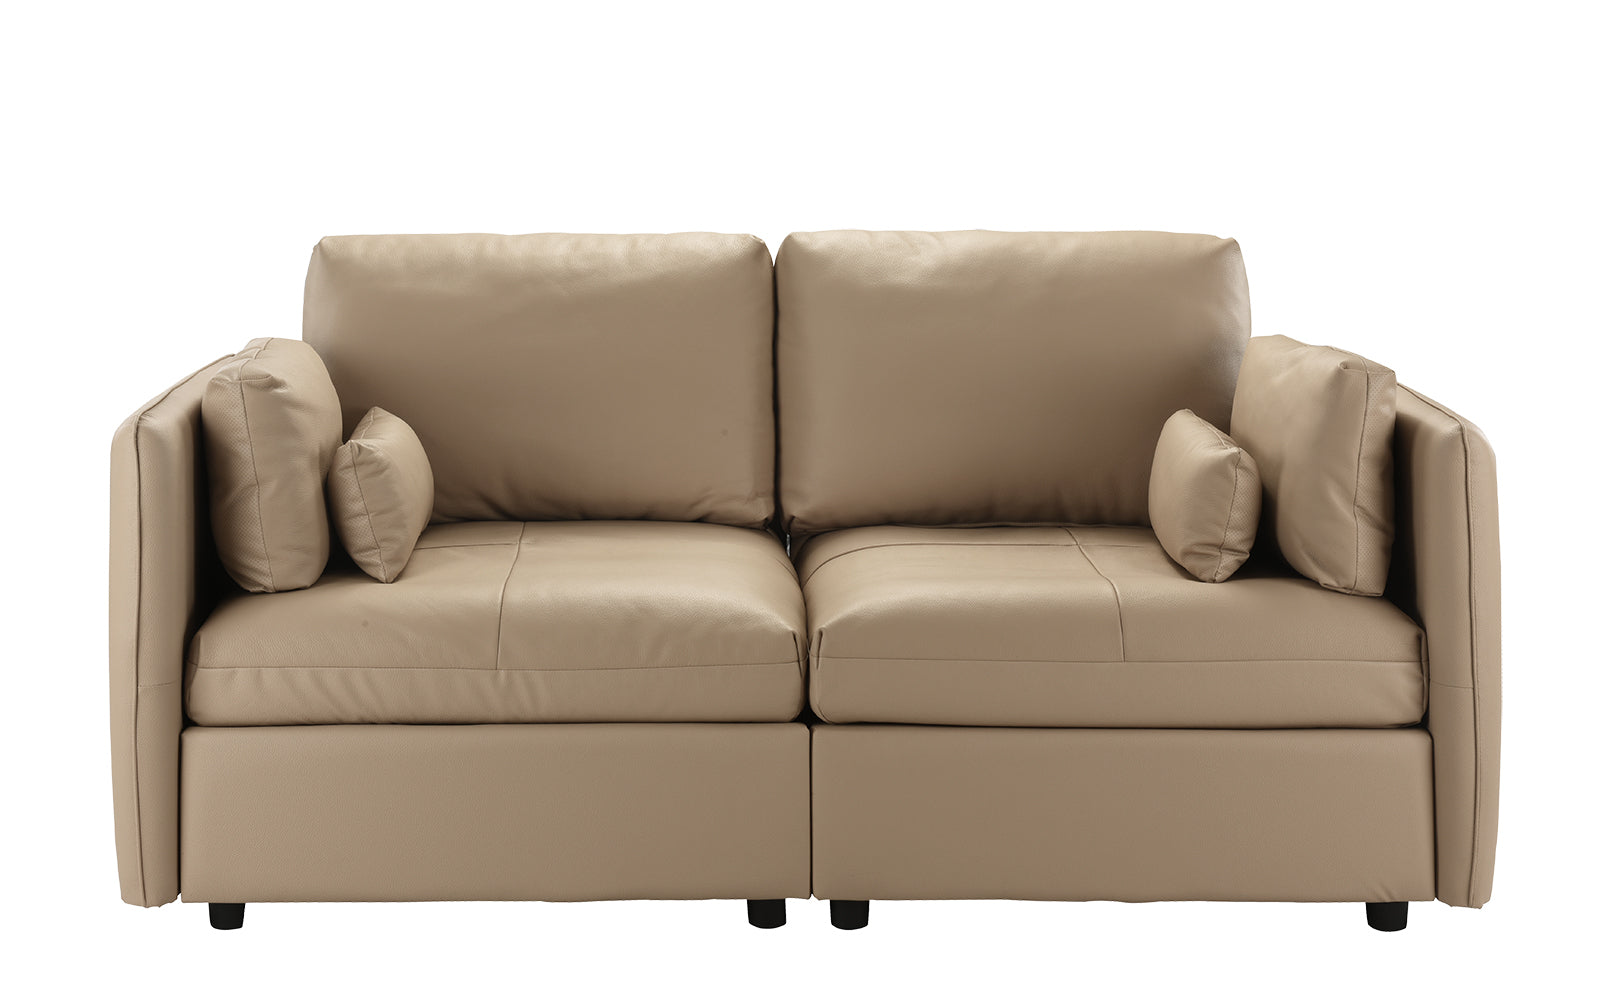 Pleasing Maxine Contemporary Faux Leather Loveseat Bralicious Painted Fabric Chair Ideas Braliciousco